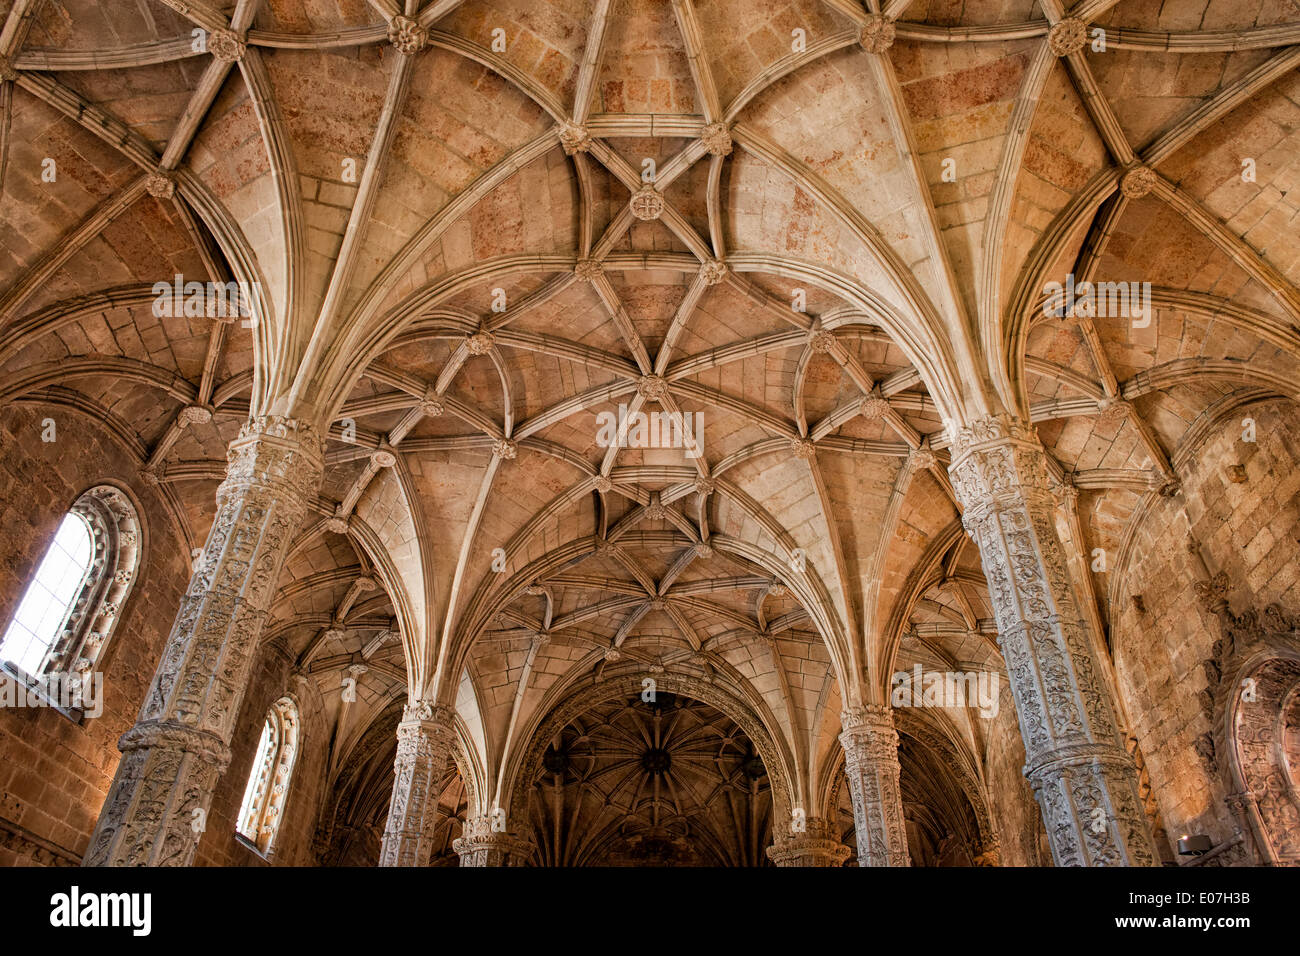 Gothic style ribbed vault ceiling of the Jeronimos